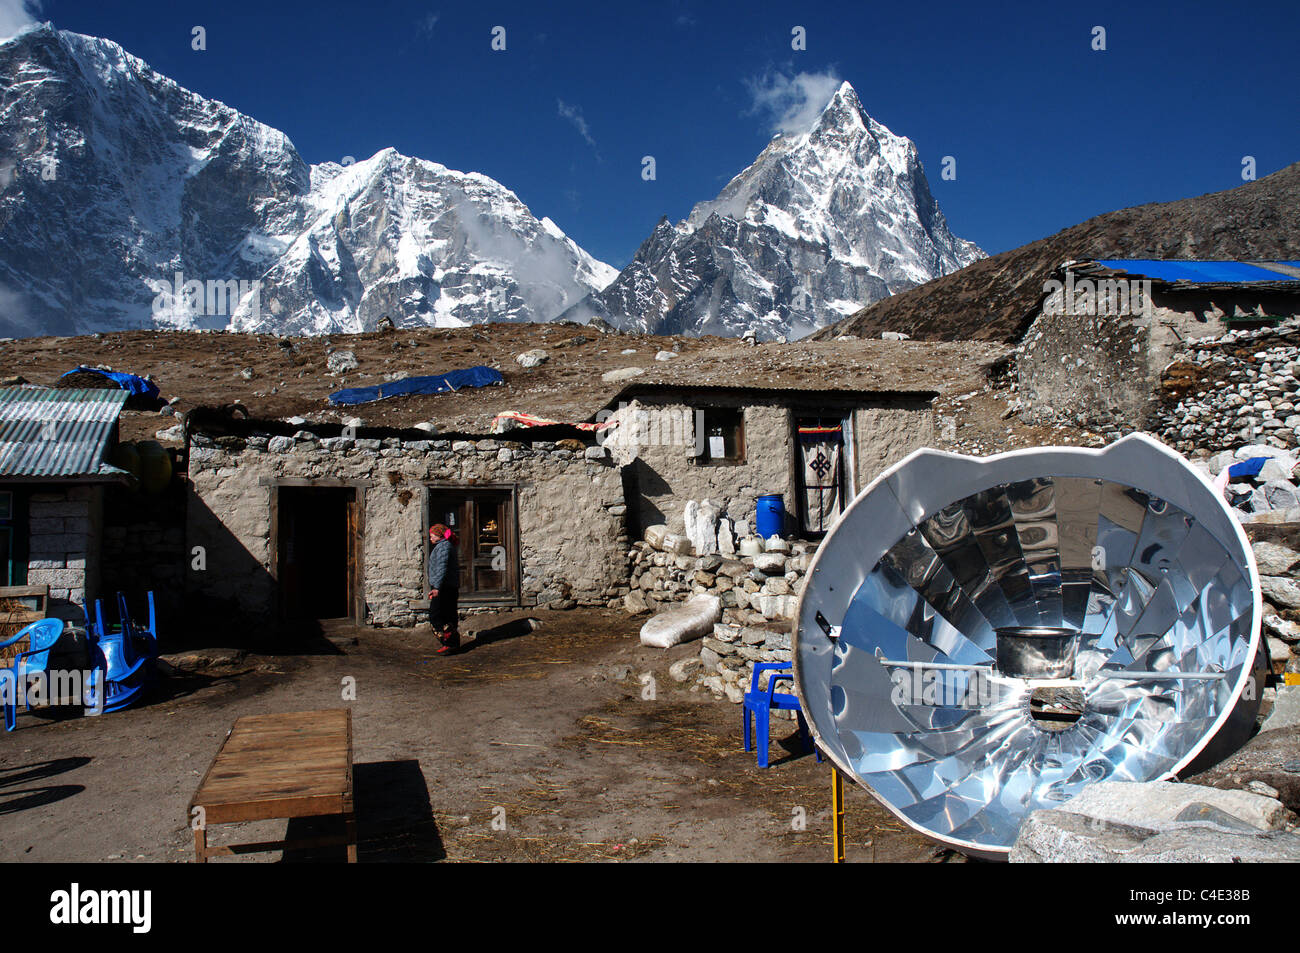 A trekking lodge with a parabolic heater in the Nepal Himalayas Stock Photo